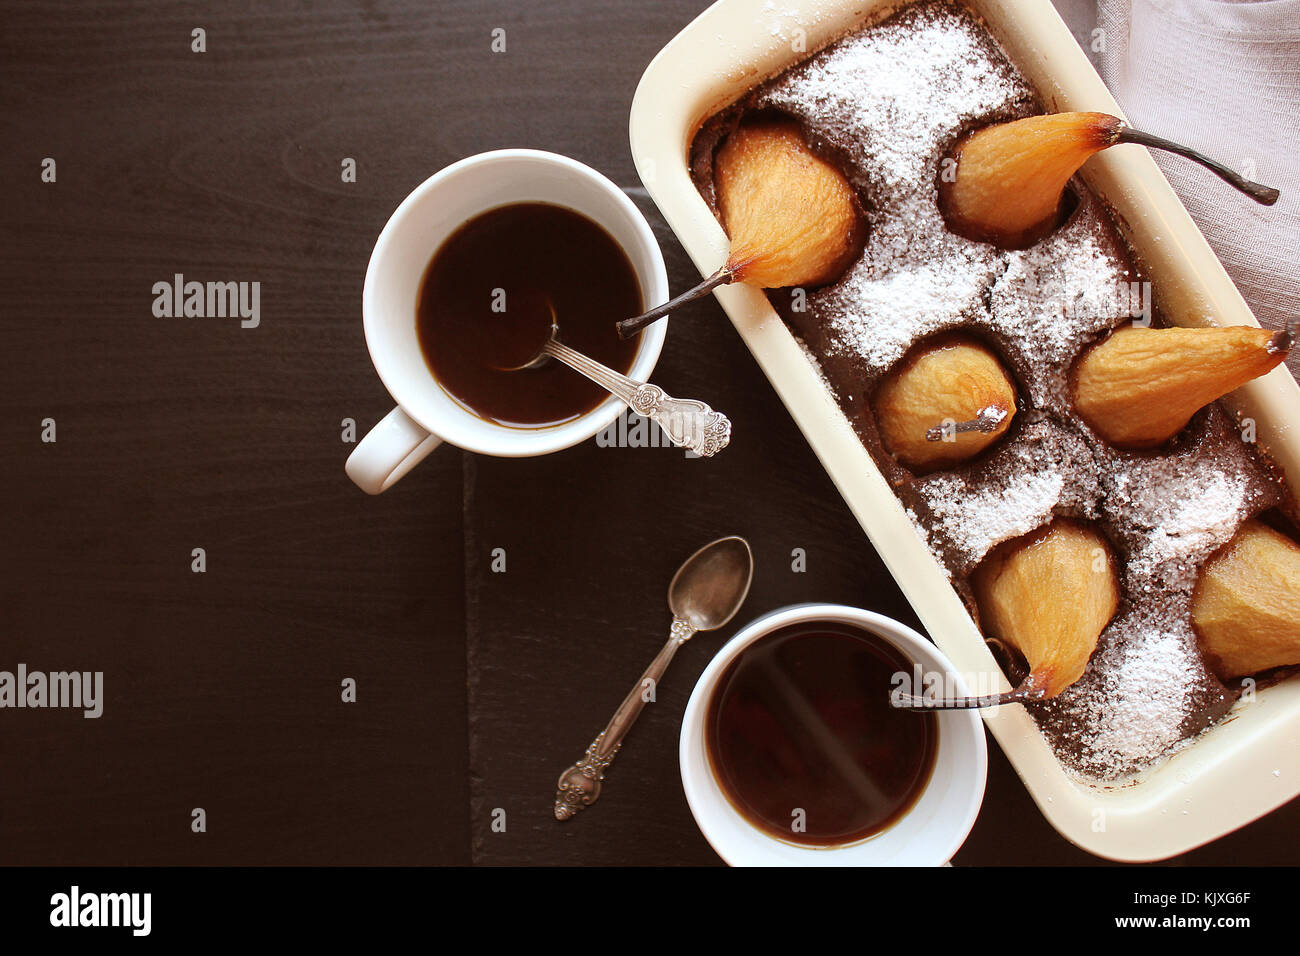 Chocolate loaf cake with whole pears baked inside and two cups coffee on dark background. Top view - Stock Image